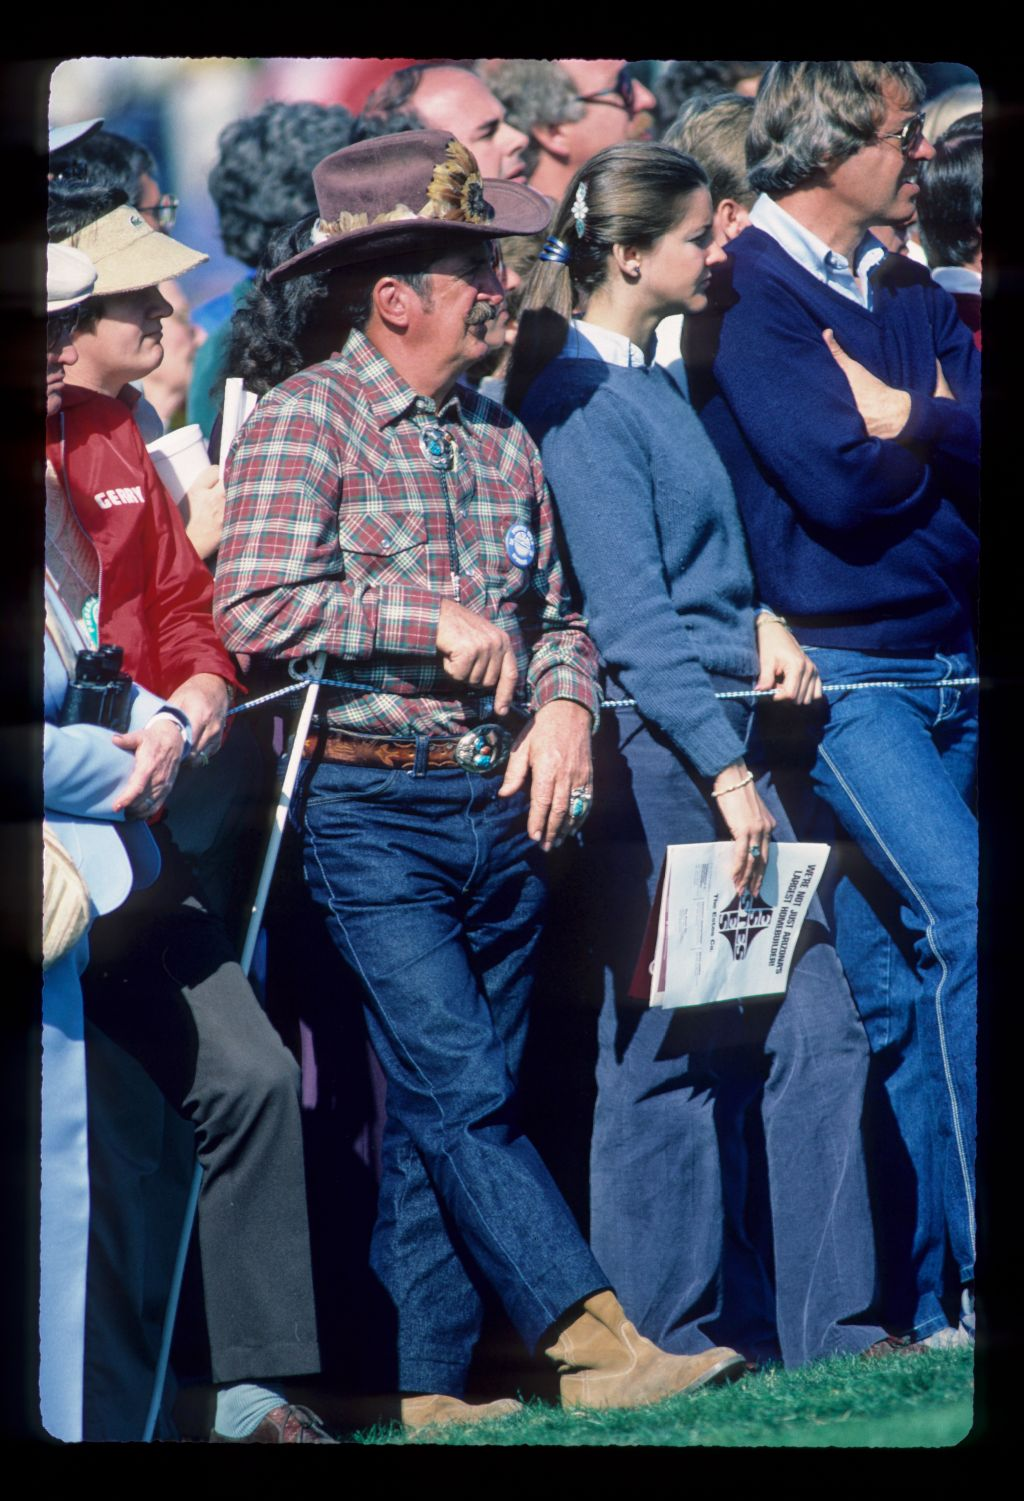 A spectator wearing a cowboy outfit at the Phoenix Open Champioship